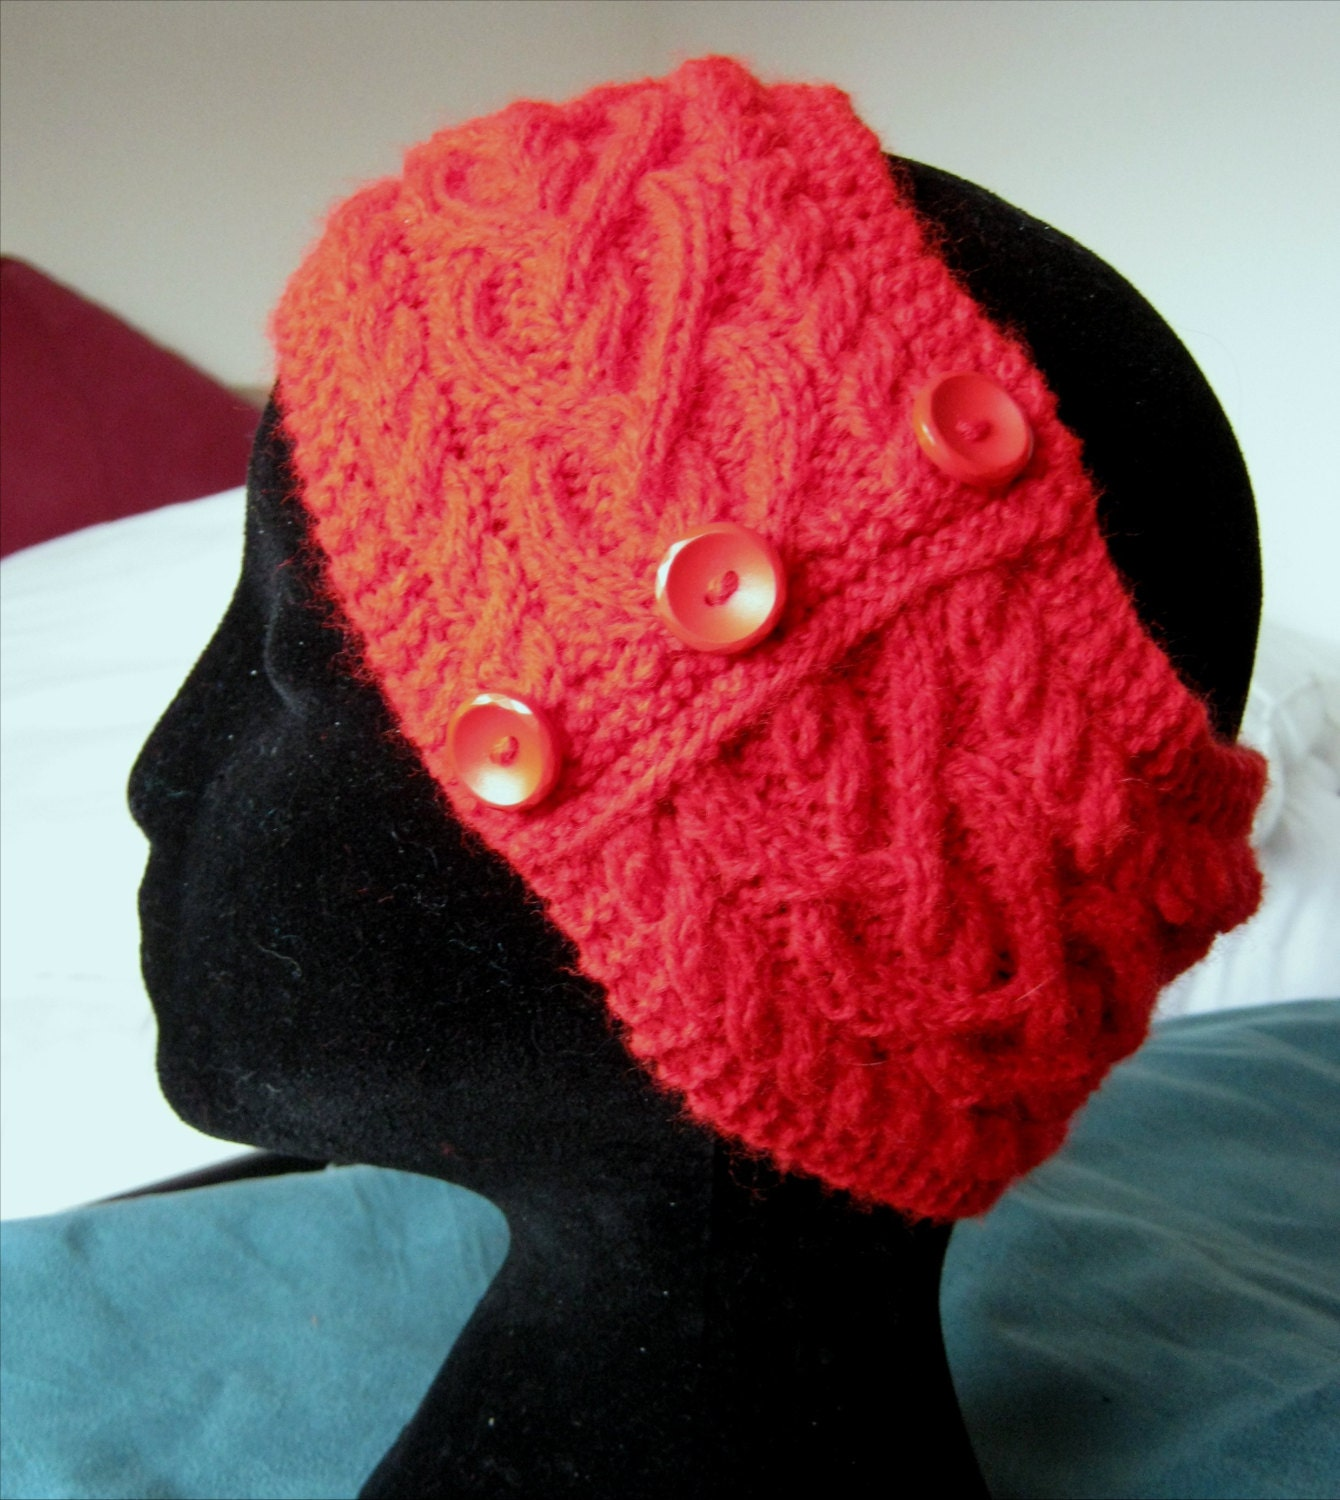 Hand Knitted Headbands Patterns : Hand knitted bright red Celtic heart pattern cable headband